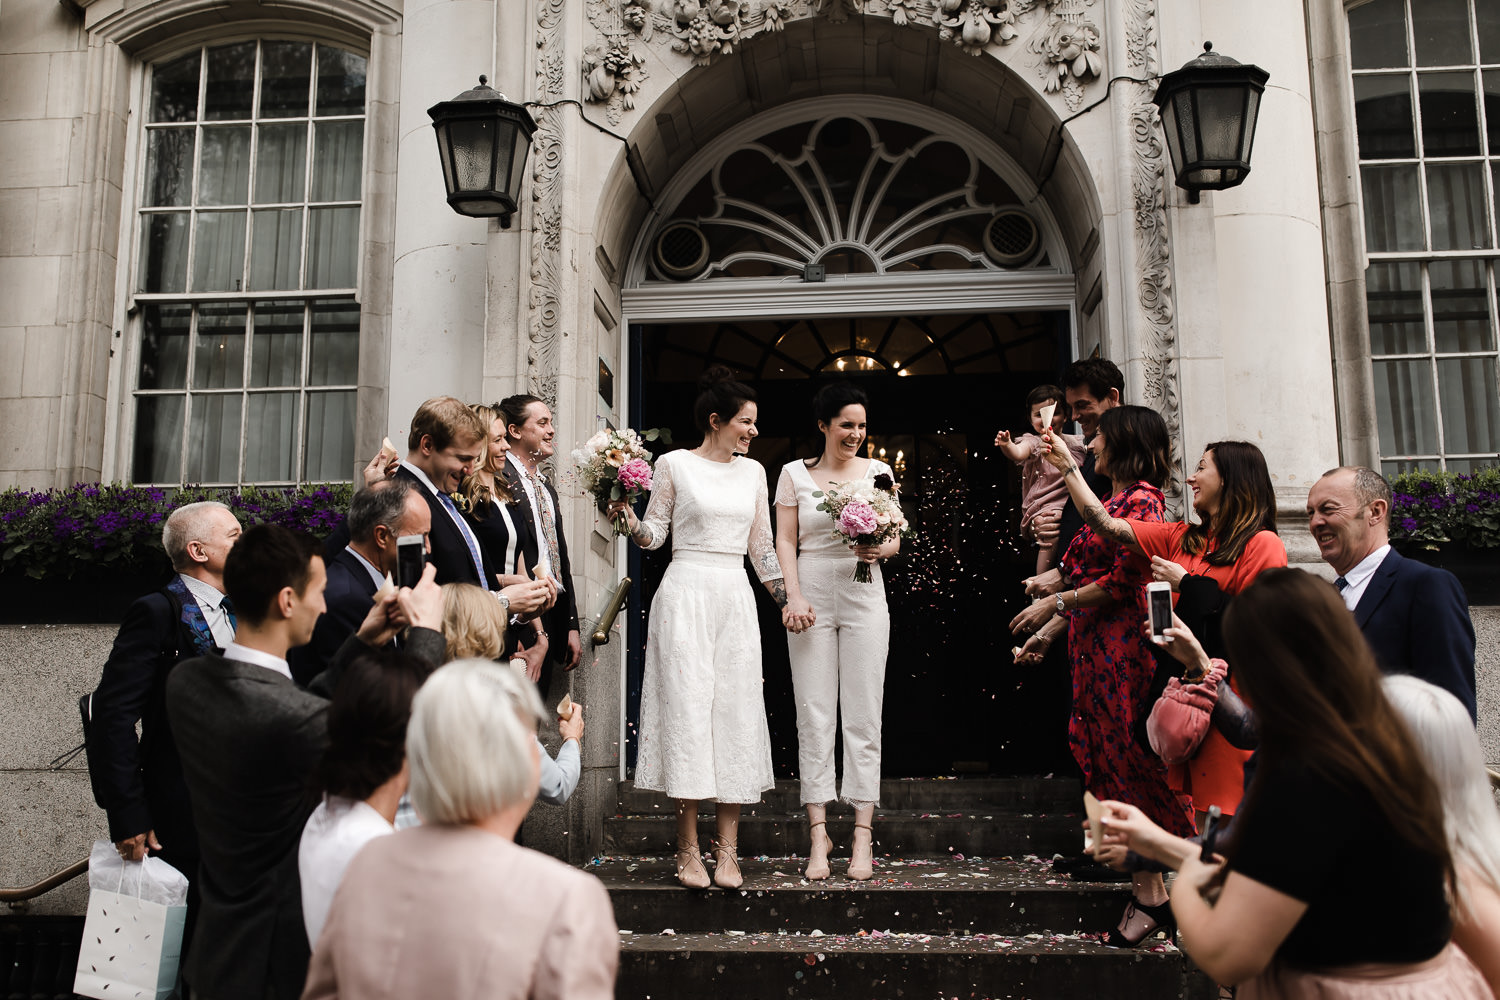 Spring_Somerset_House_London_Wedding_001.jpg